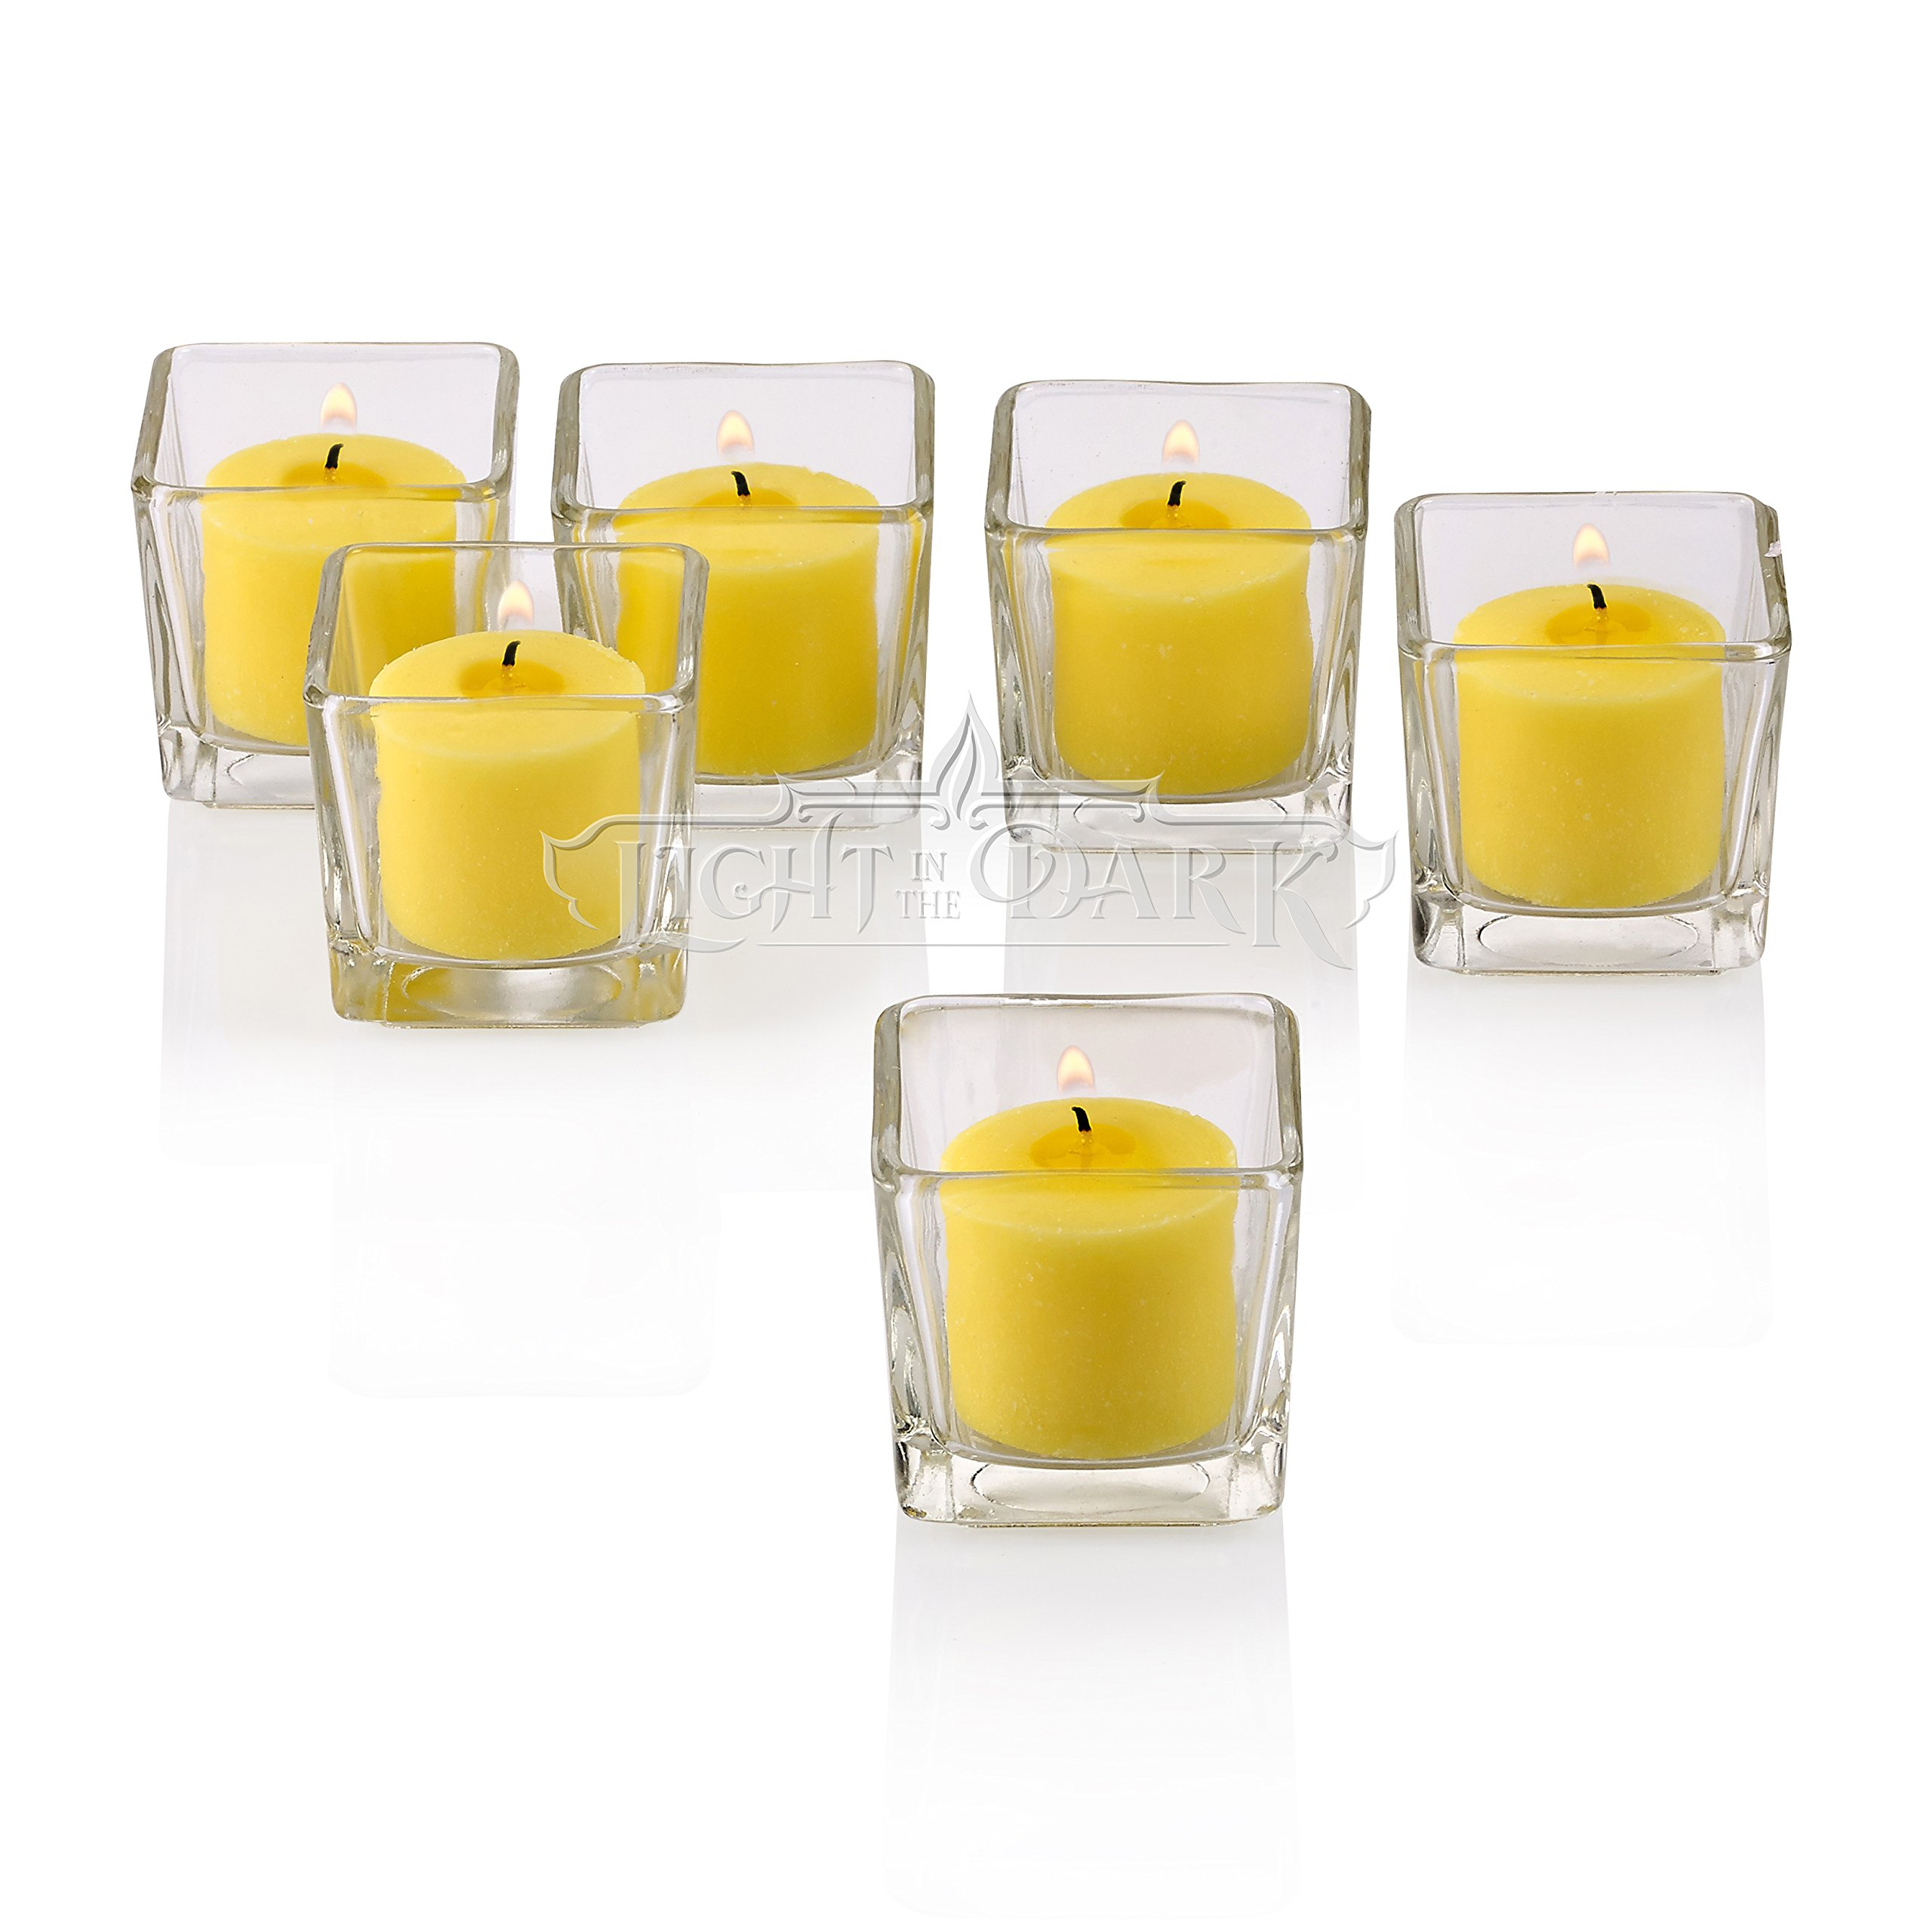 Light In The Dark Clear Glass Square Votive Candle Holders with Citronella Yellow Votive Candles Burn 10 Hours Set of 72